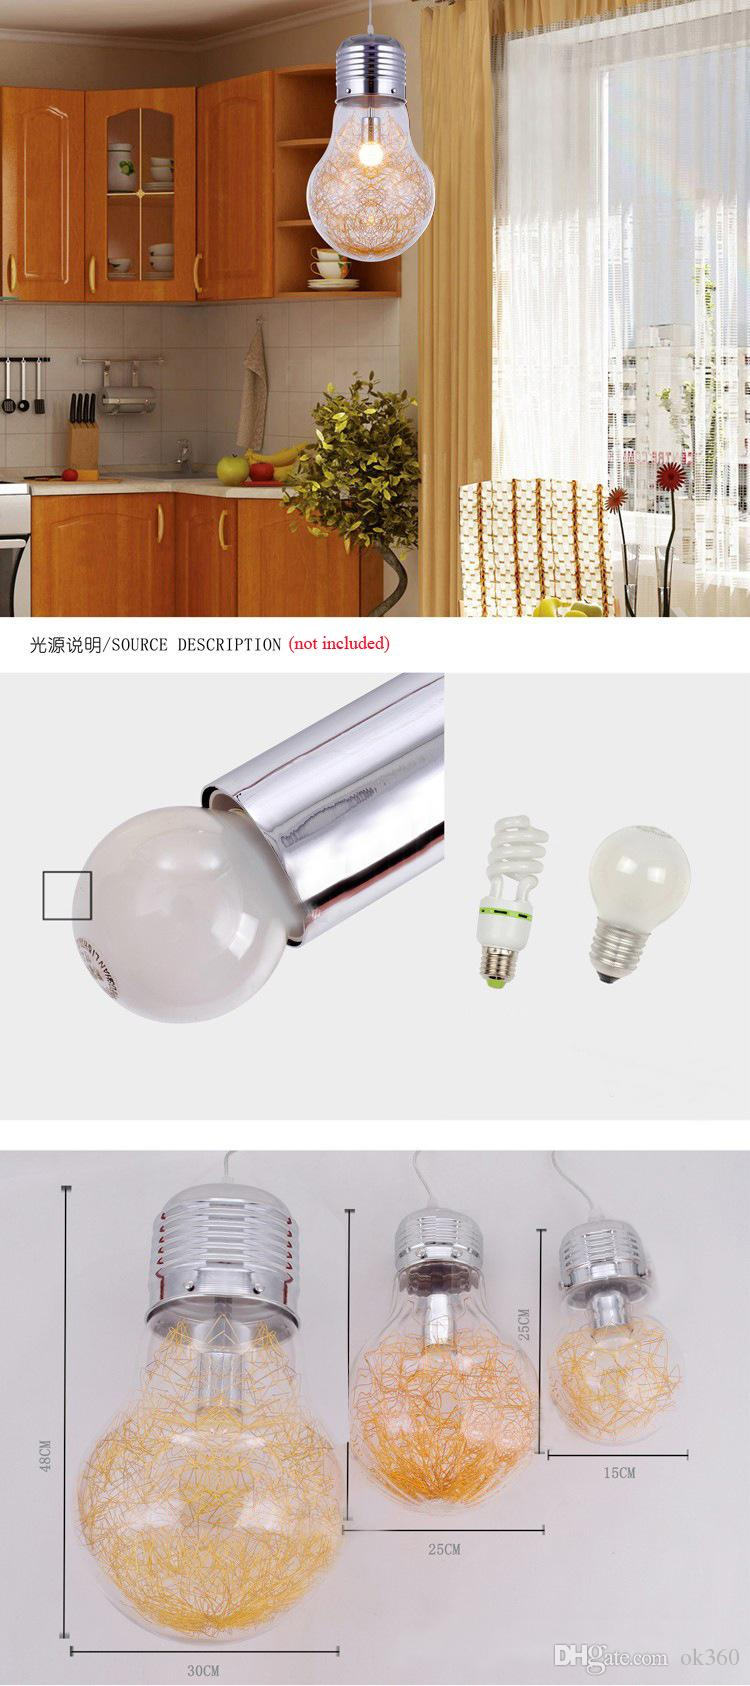 Stylish Big Bulb Modle Pendant Lamp New Modern Dining Room Aluminum Wire inside Glass ball Lampshade Pendant Light Fixture